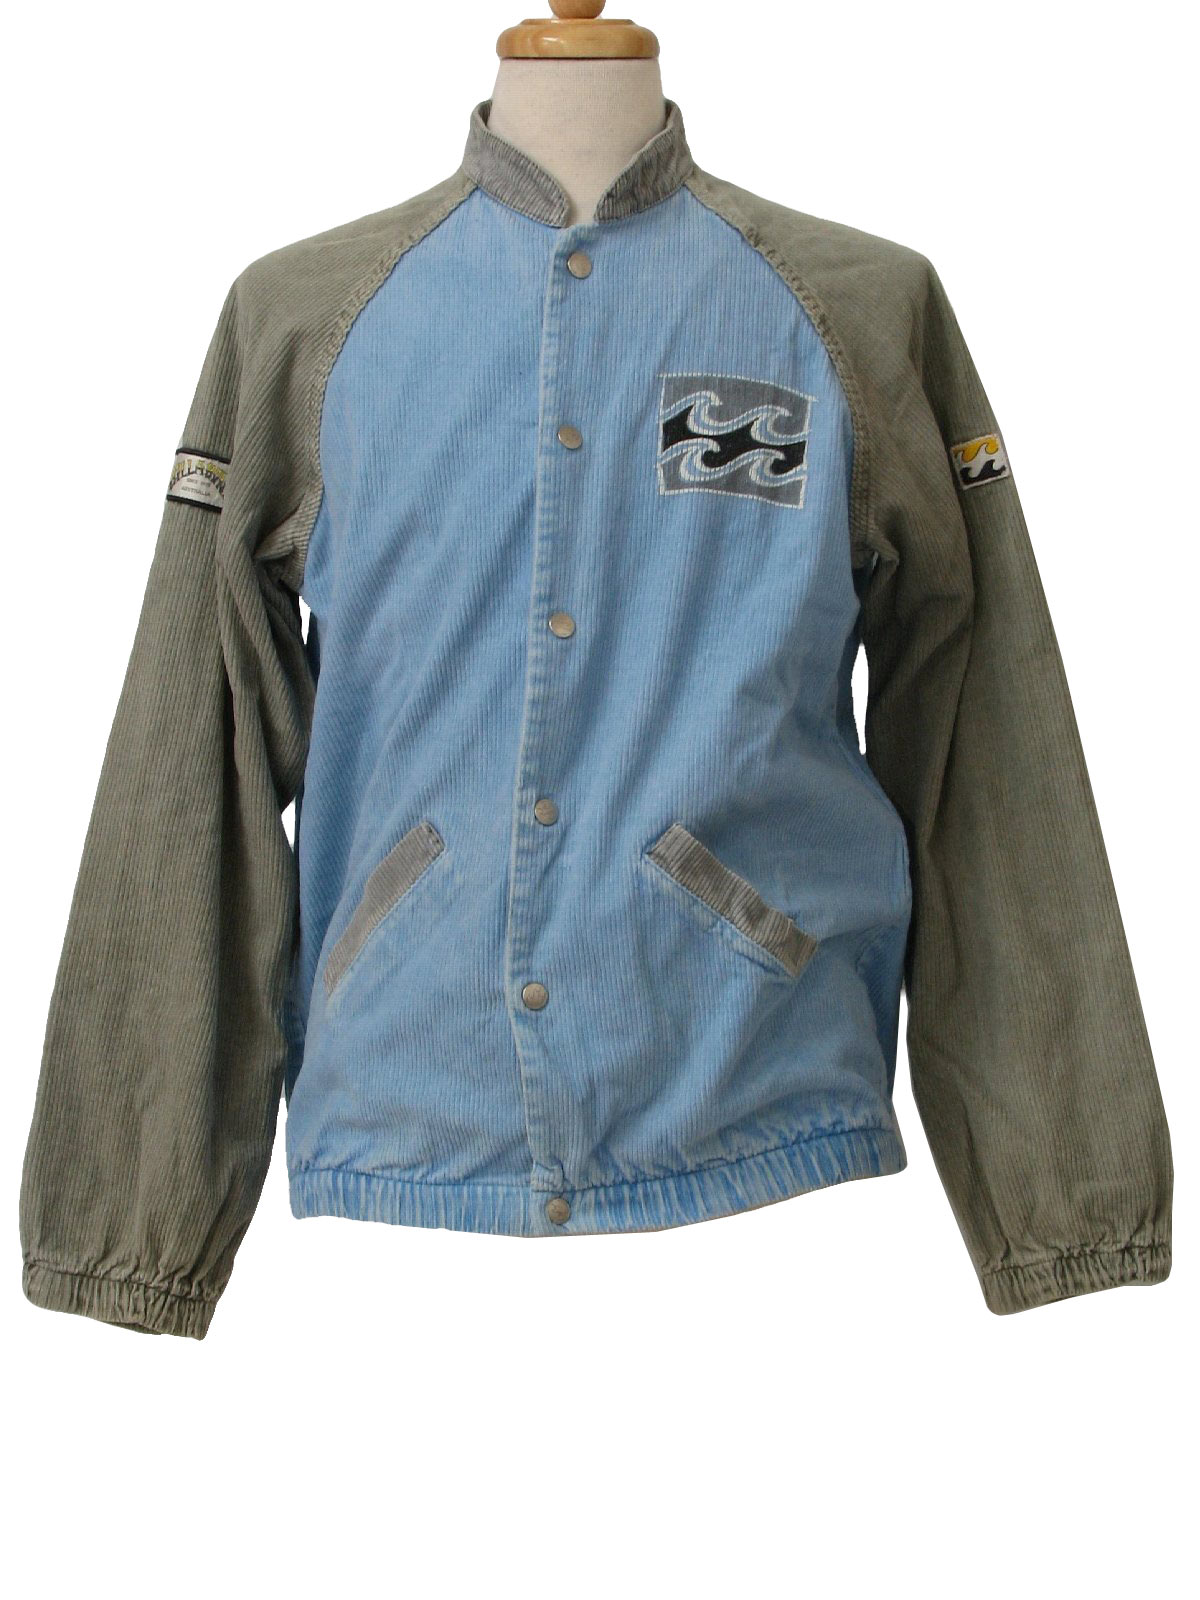 80s Billabong Jacket http://www.rustyzipper.com/shop.cfm?viewpartnum=221062